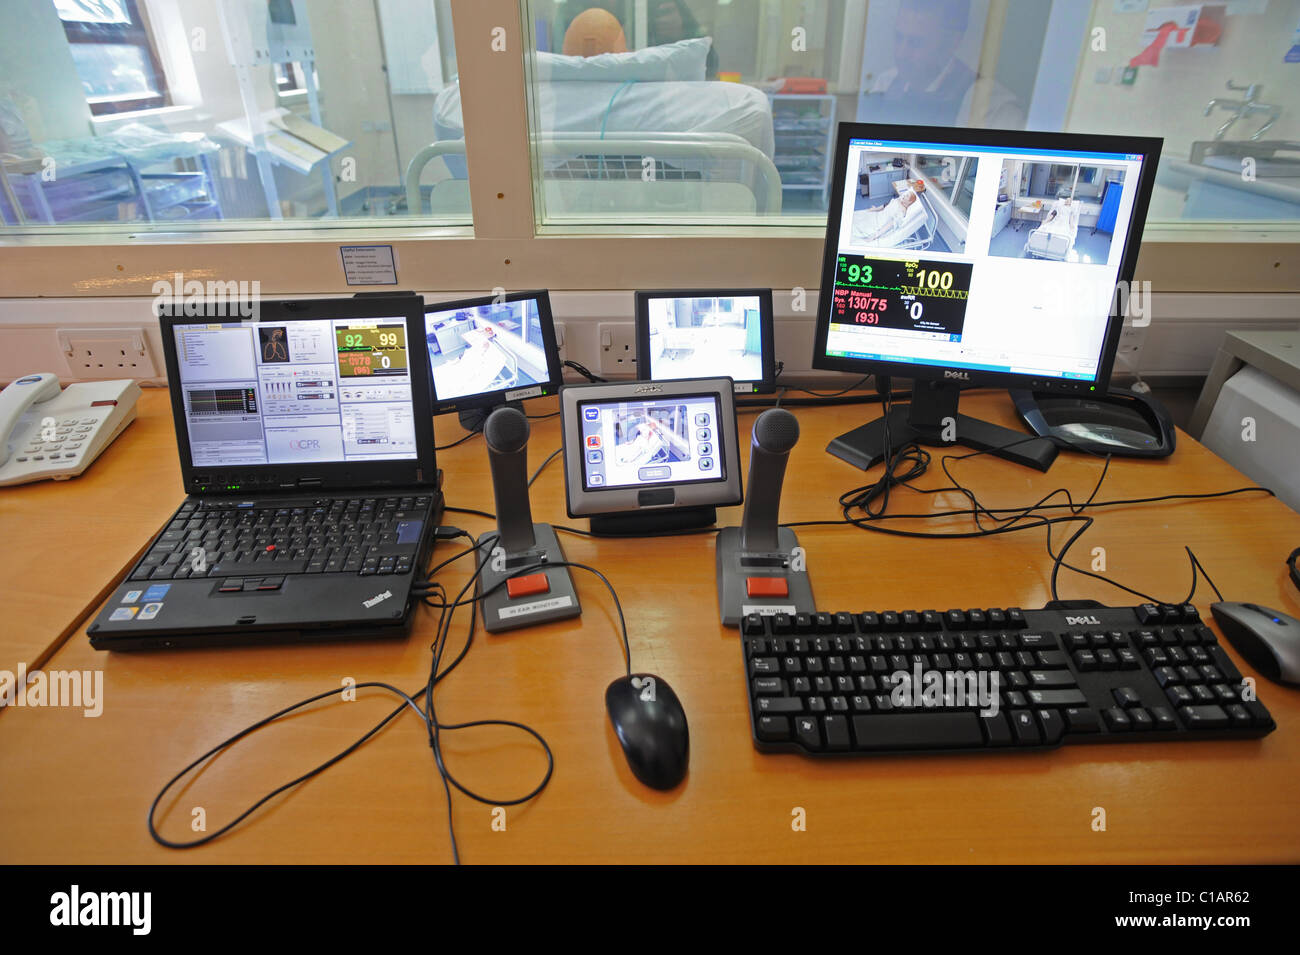 The control room of the new Simulation Suite at Worthing hospital - Stock Image